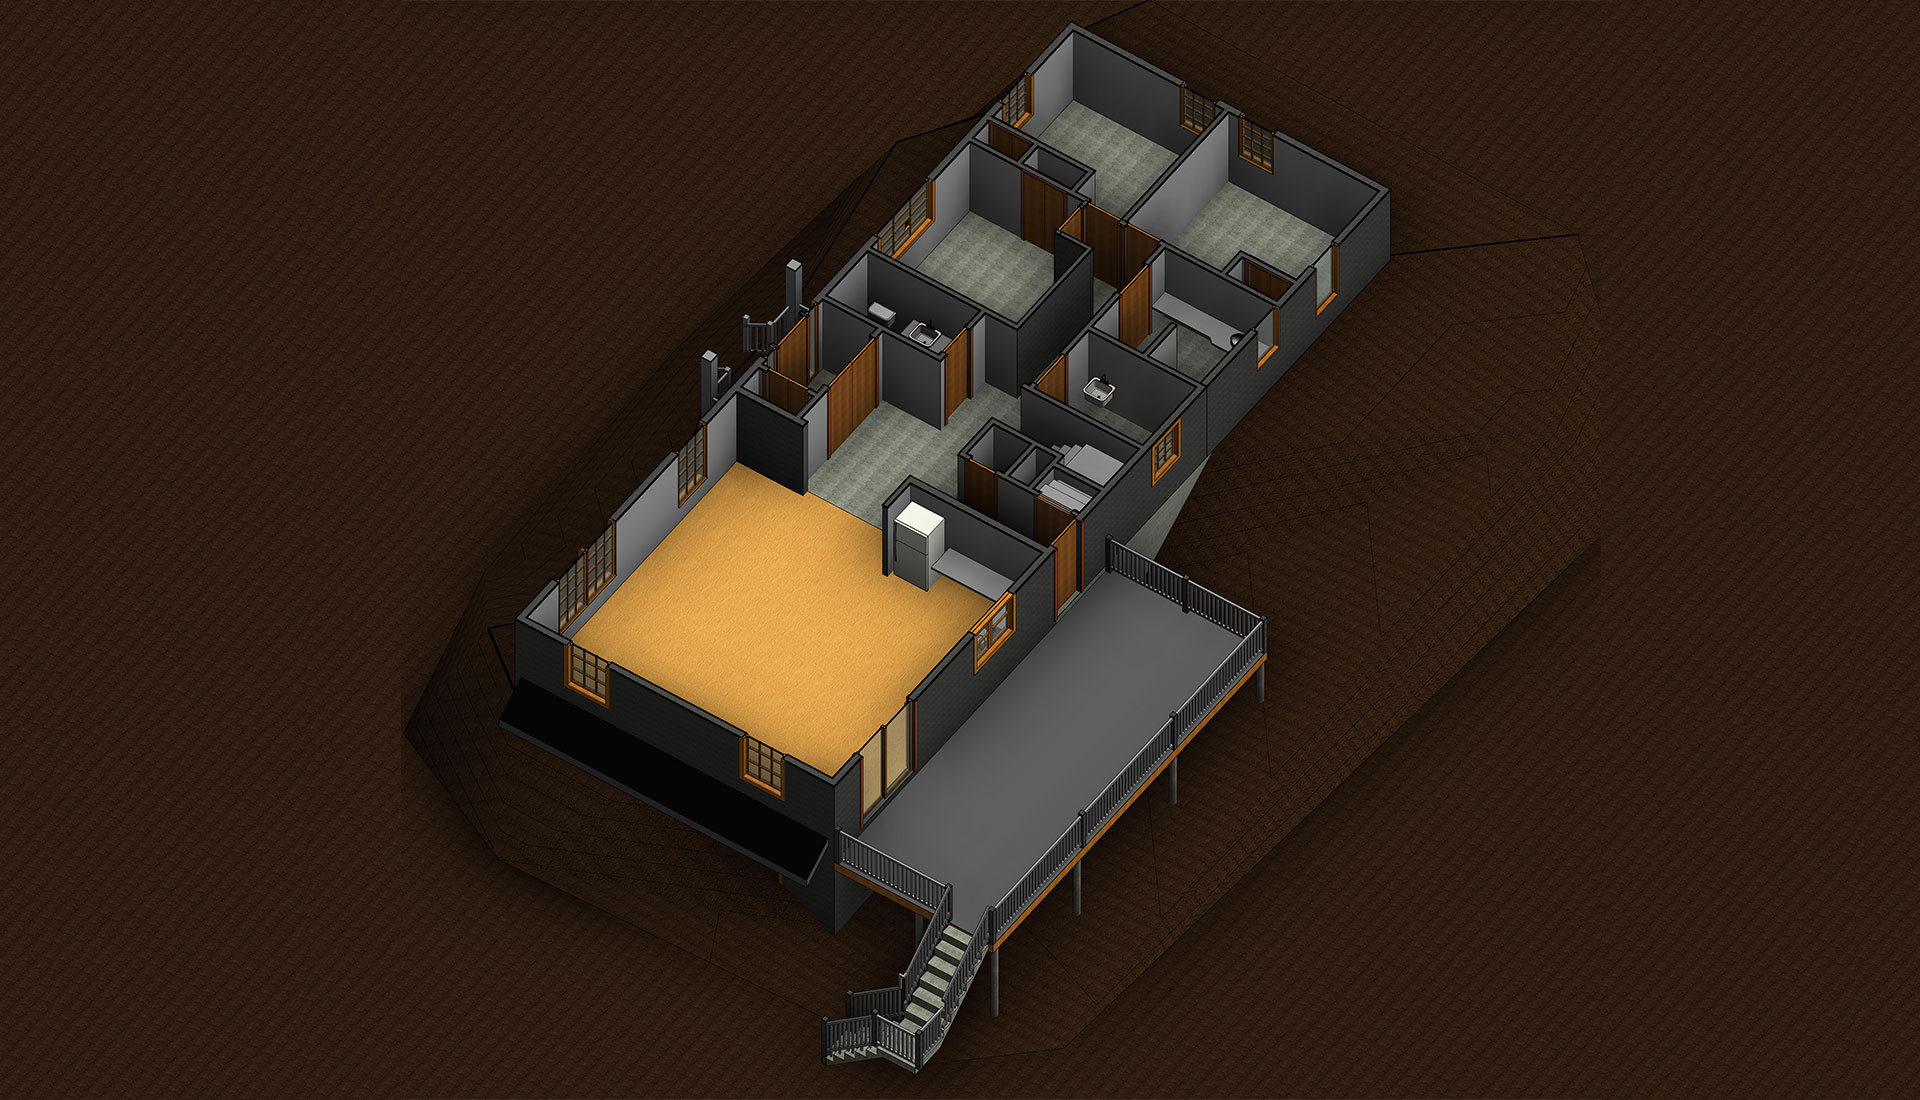 Top-View_Montain-Terrain_Revit-Model-of-Home_Residential-Project-by-United-BIM